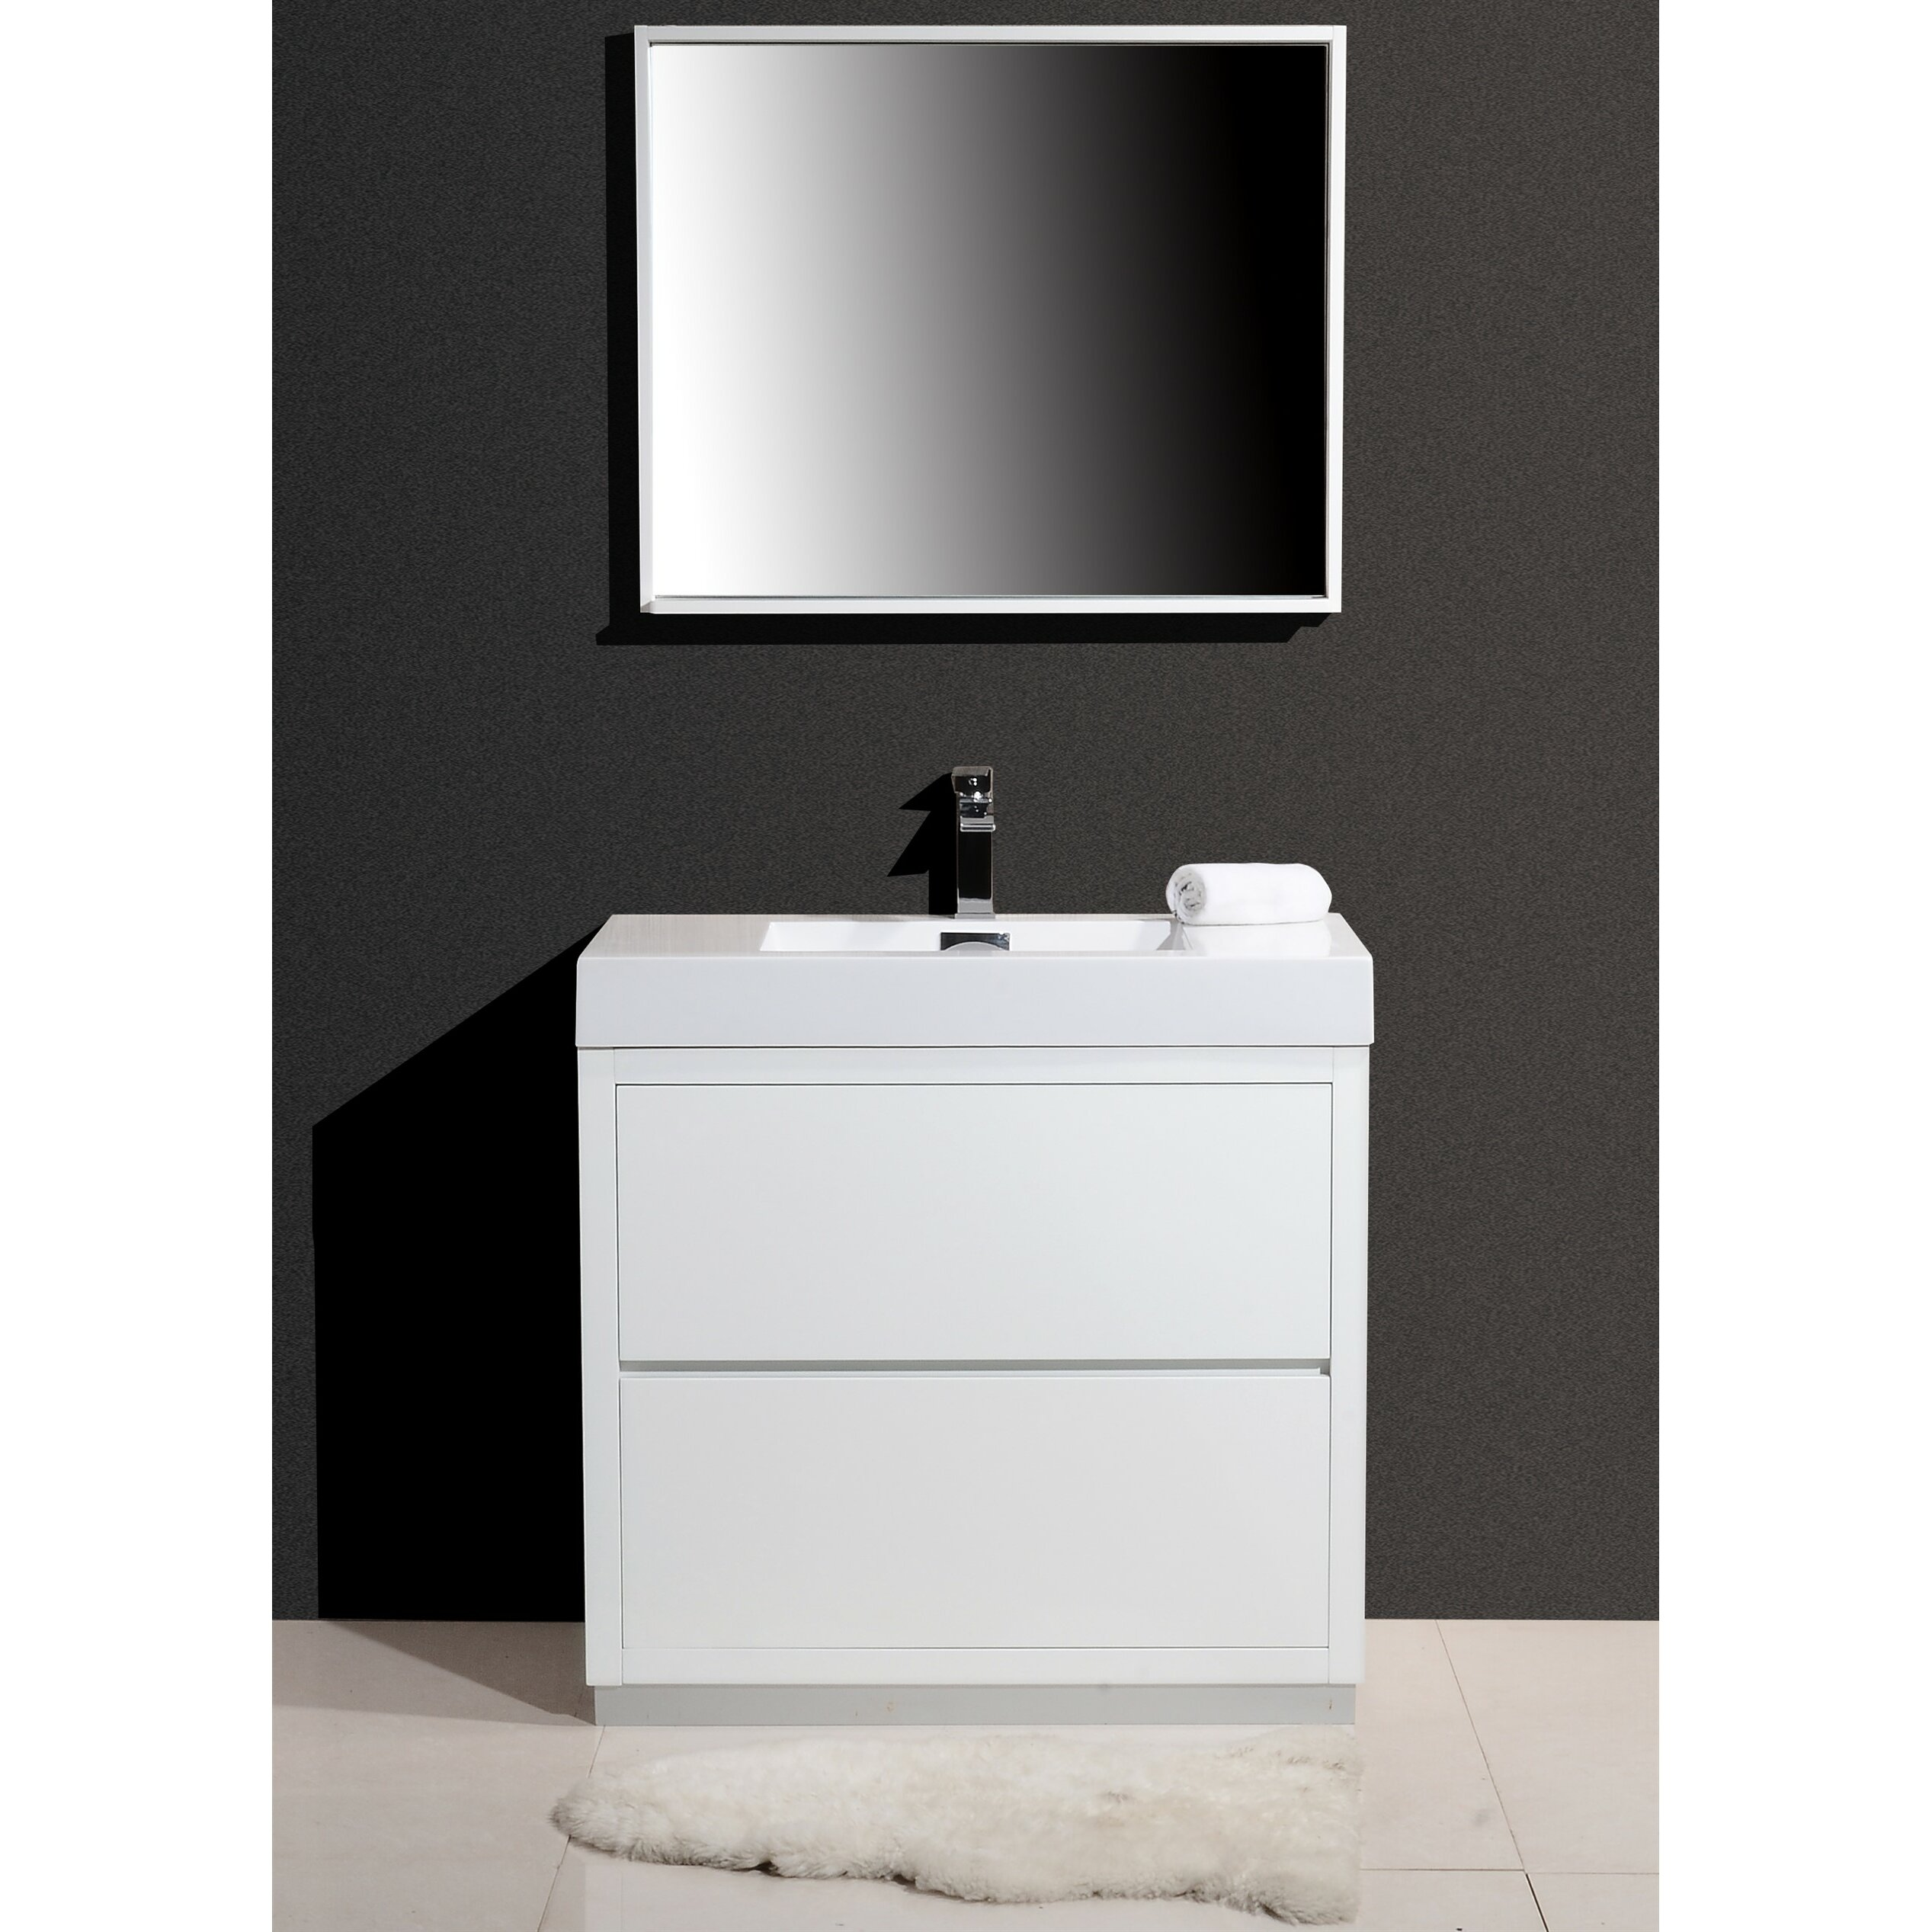 Kube Bath Bliss 36 Single Free Standing Modern Bathroom Vanity Set